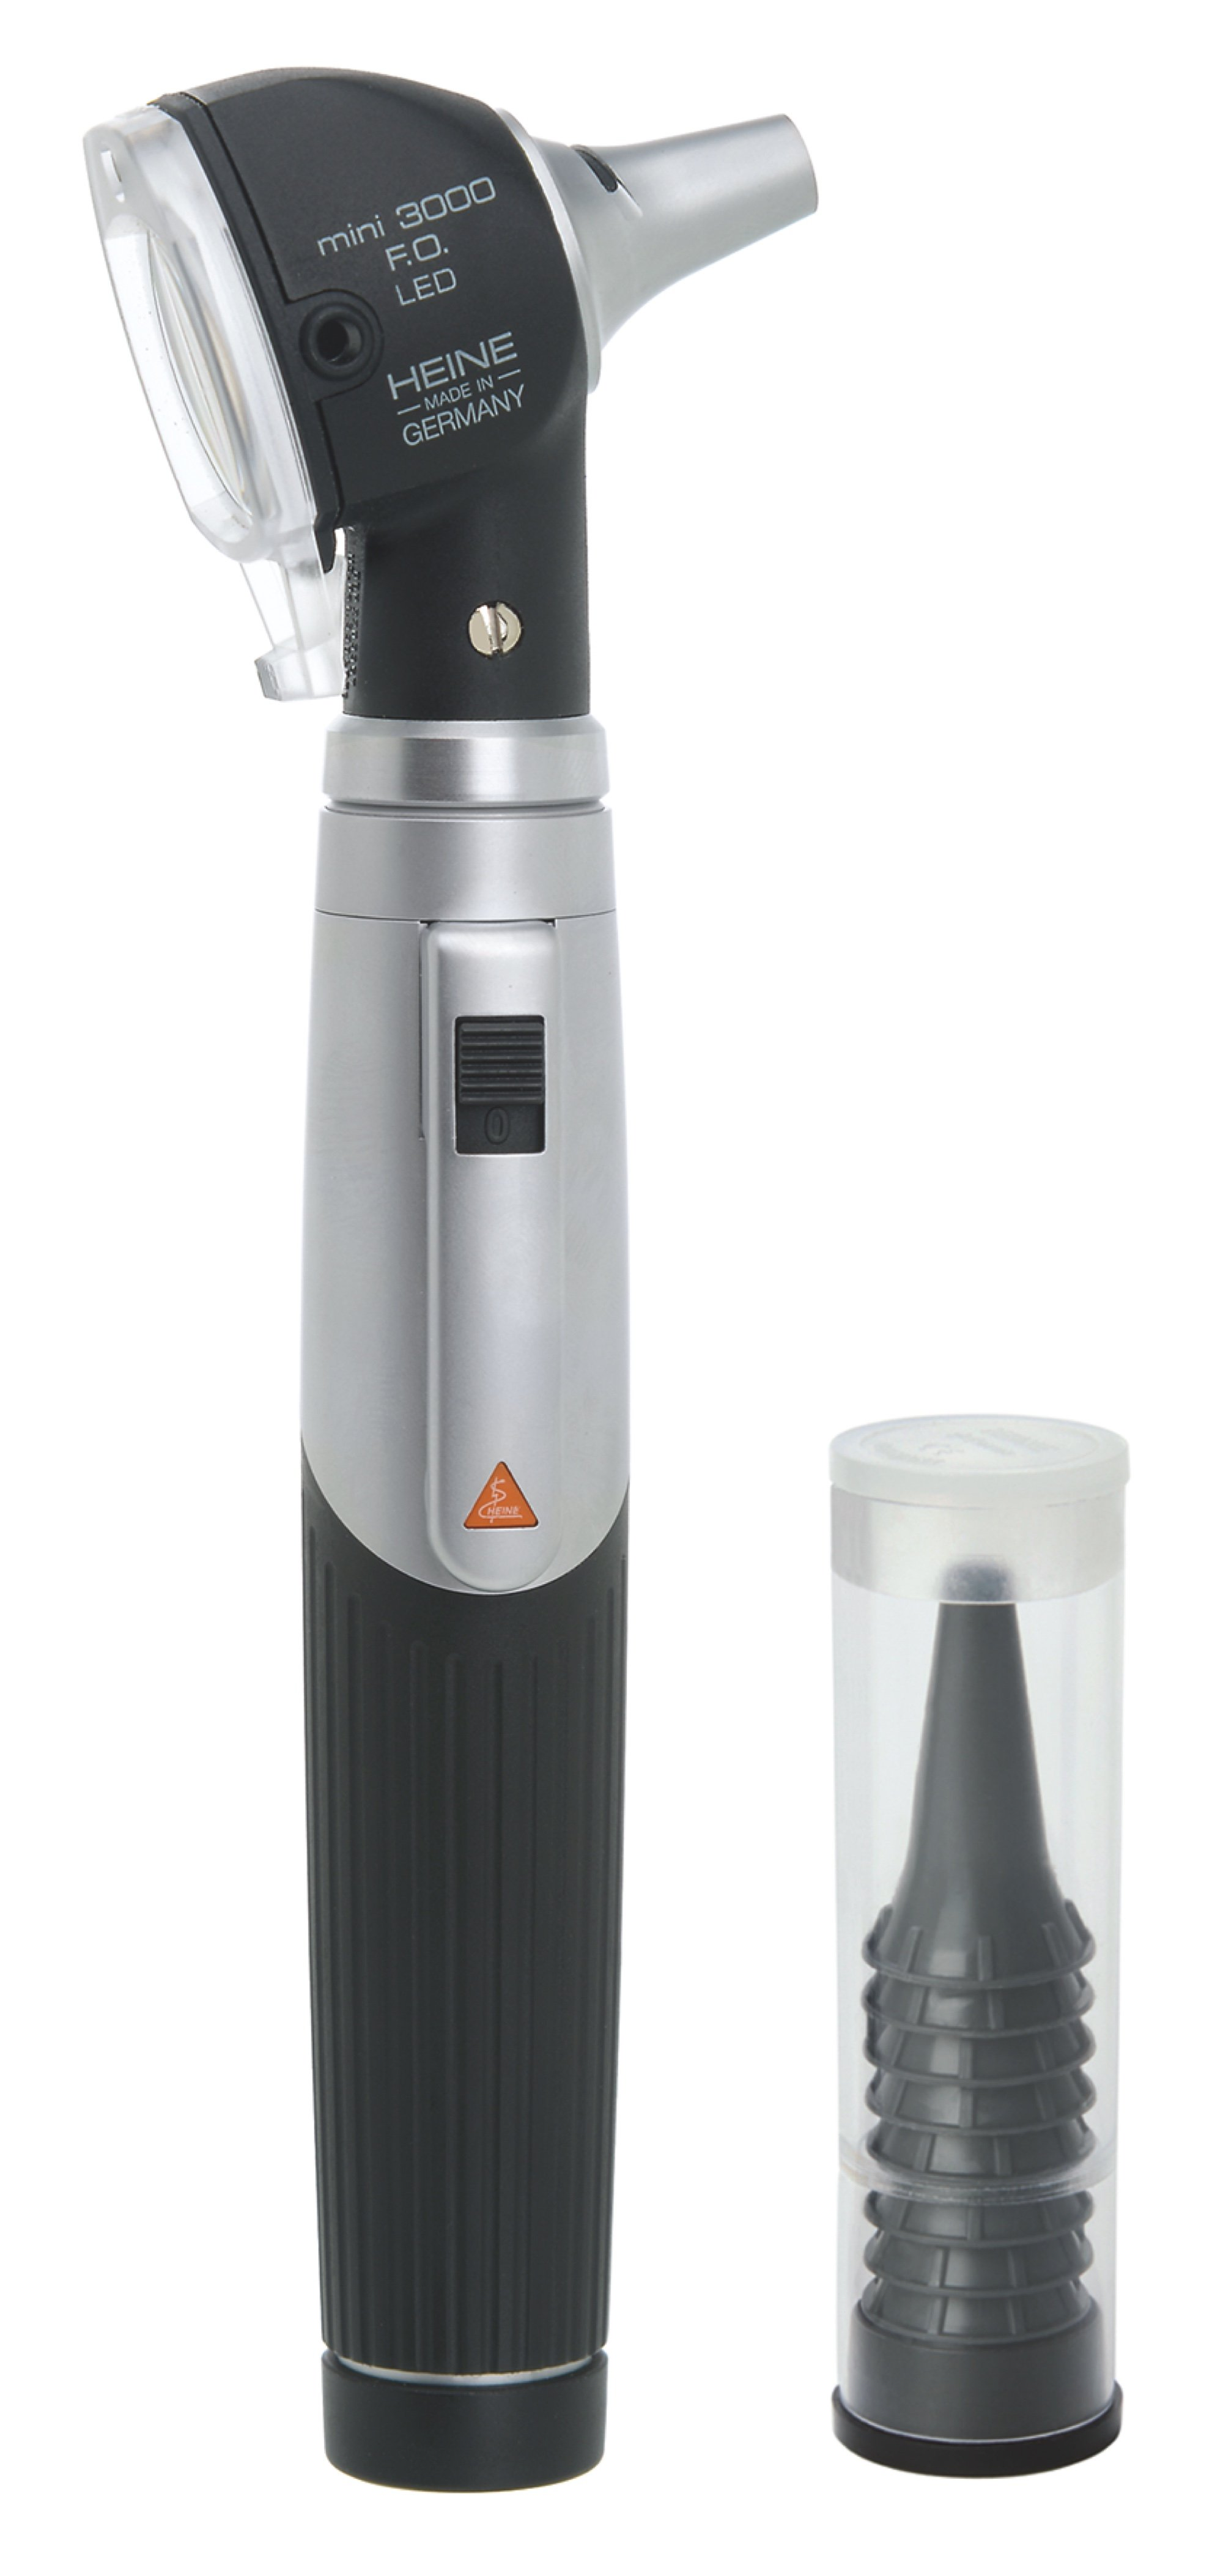 HEINE mini3000 LED Otoscope with battery handle & Disposable tips